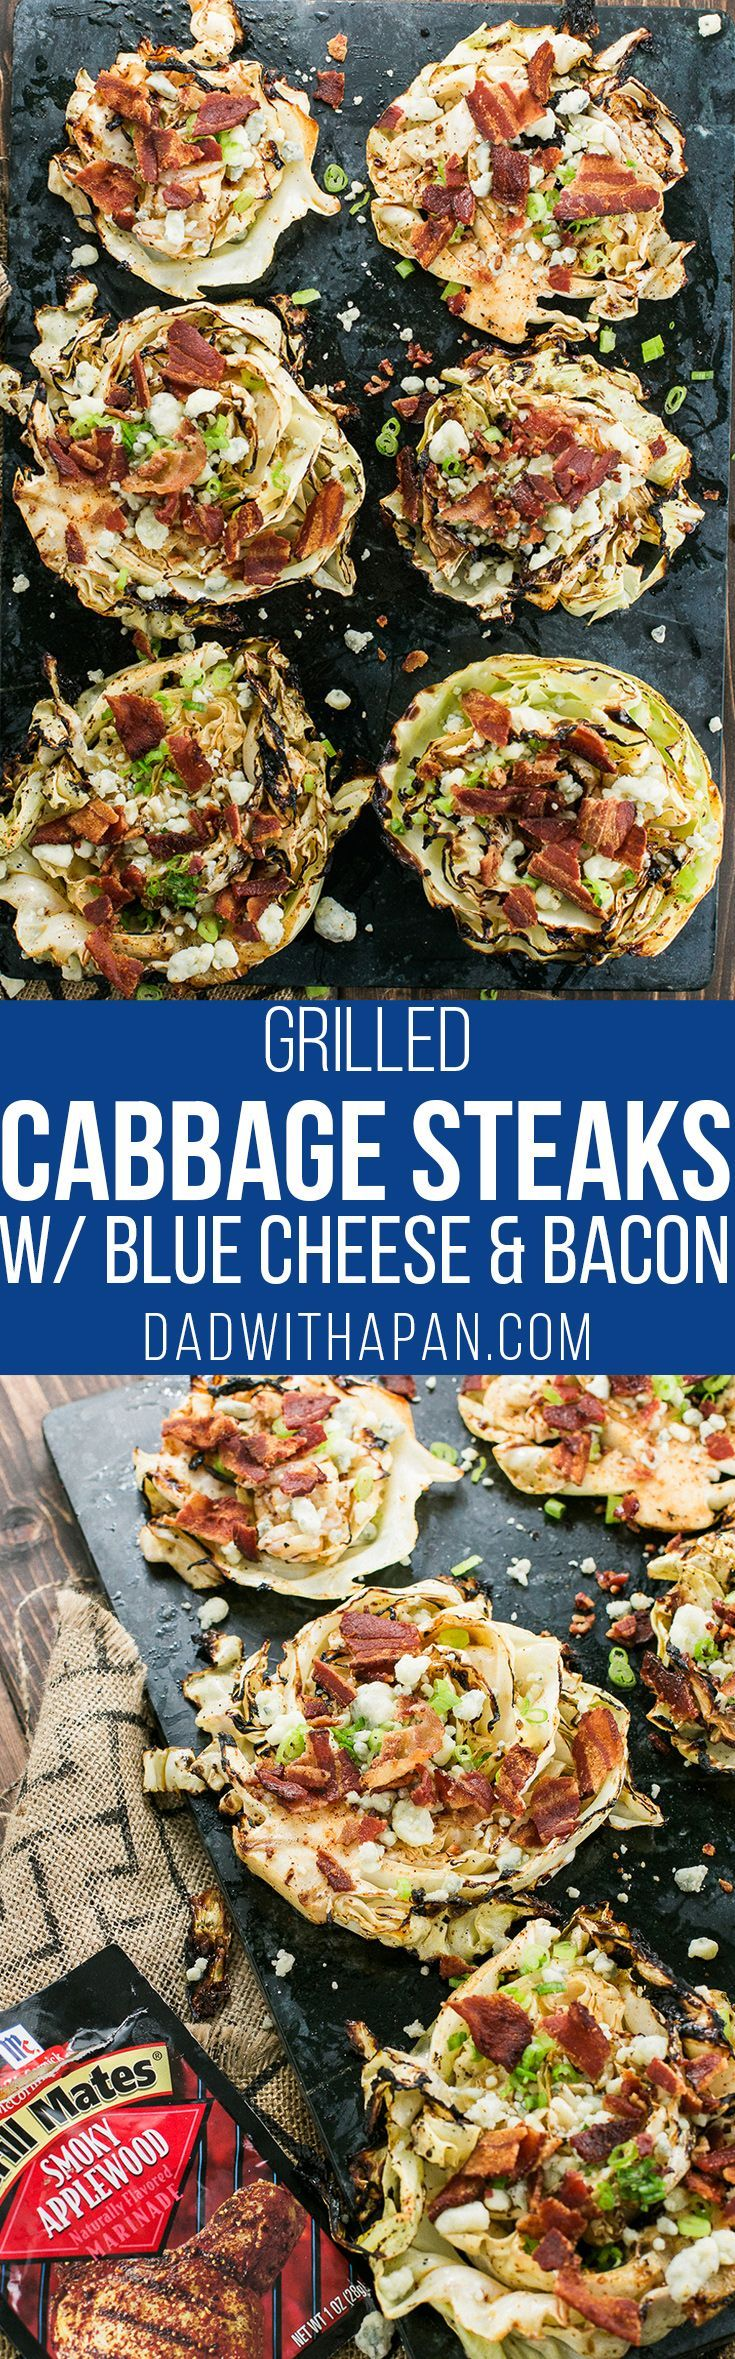 Grilled Cabbage Steaks Marinated With McCormick Grill Mates Smoky Applewood seasoning, topped with Bacon, Blue Cheese, and Green onions! /mccormickspice/